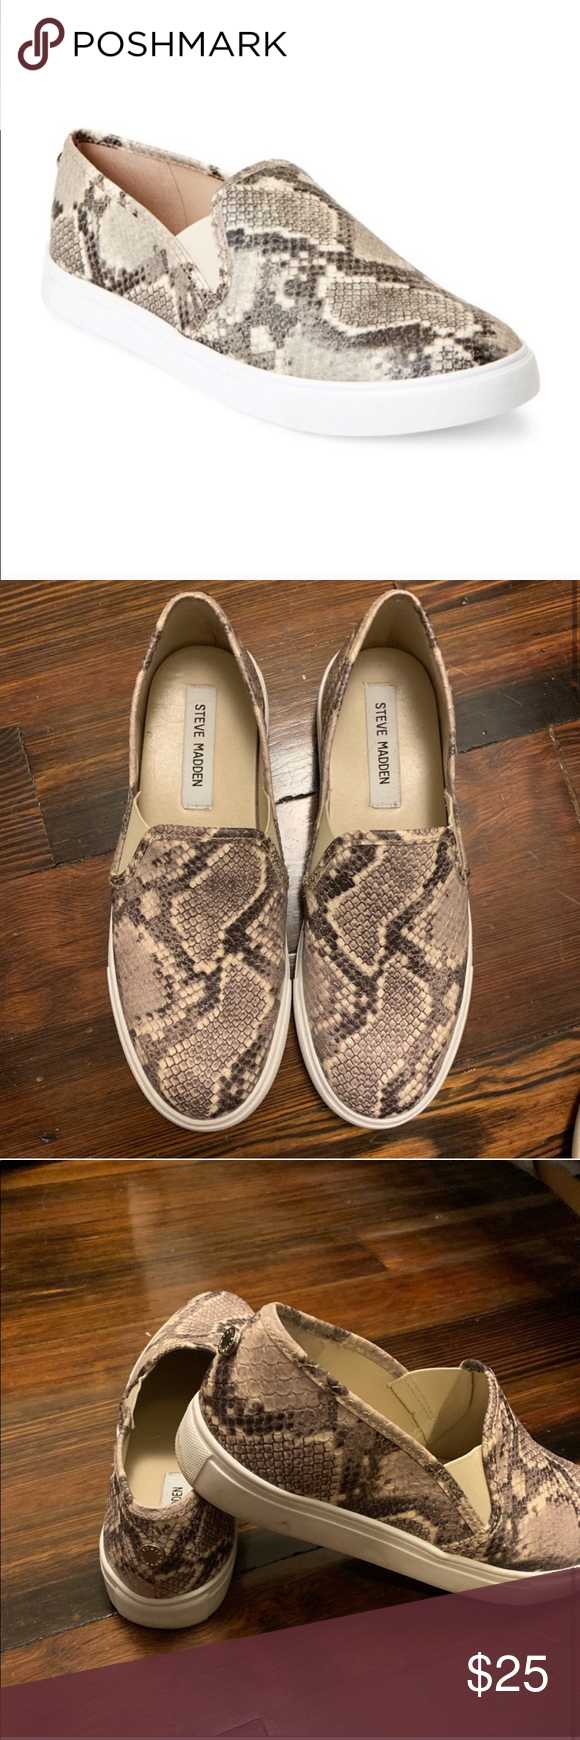 Steve madden shoes sneakers